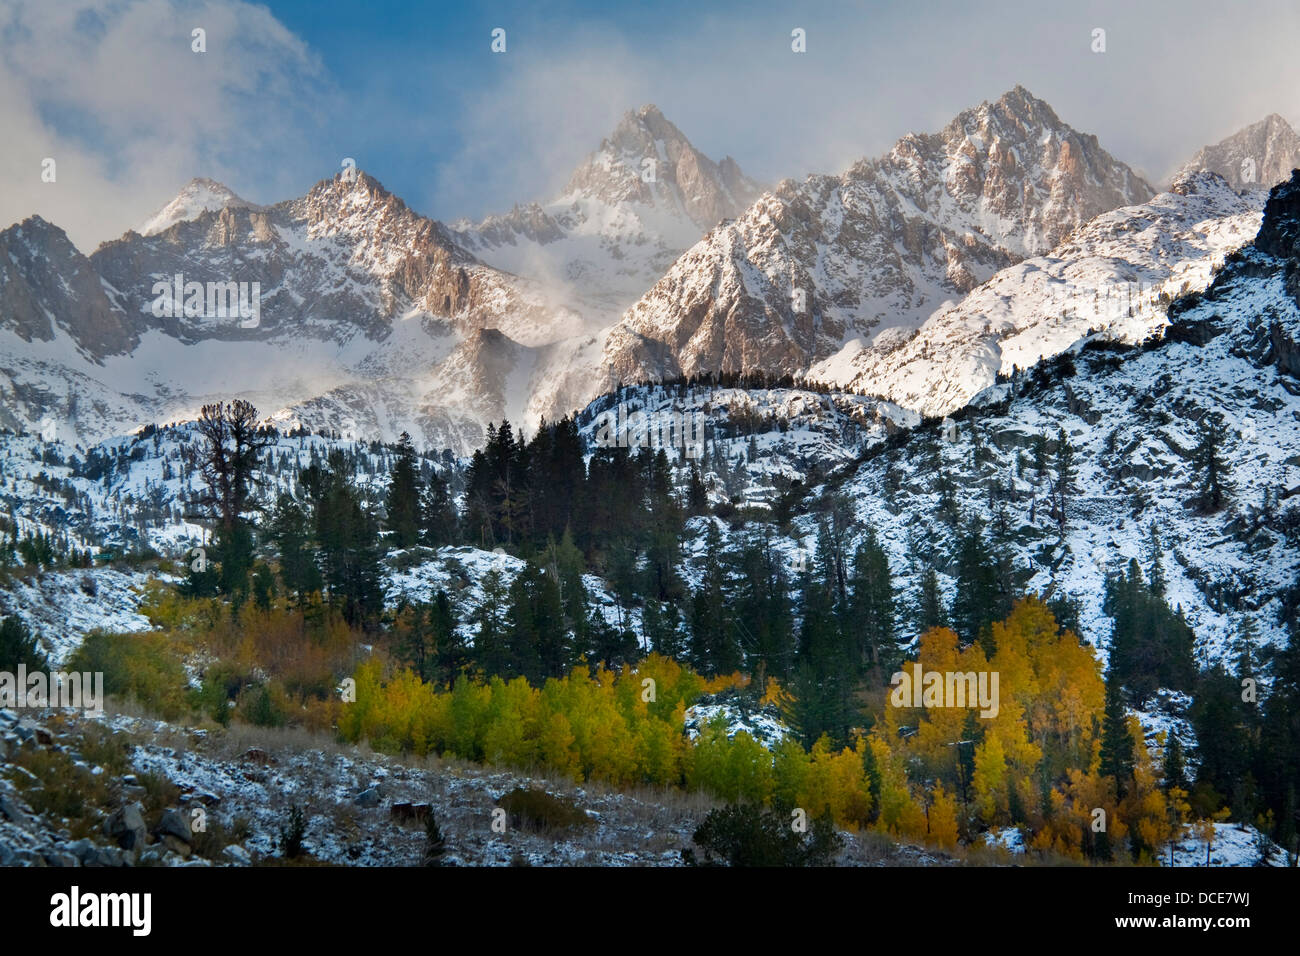 Clearing fall snowstorm over the high peaks of the Eastern Sierra, California - Stock Image